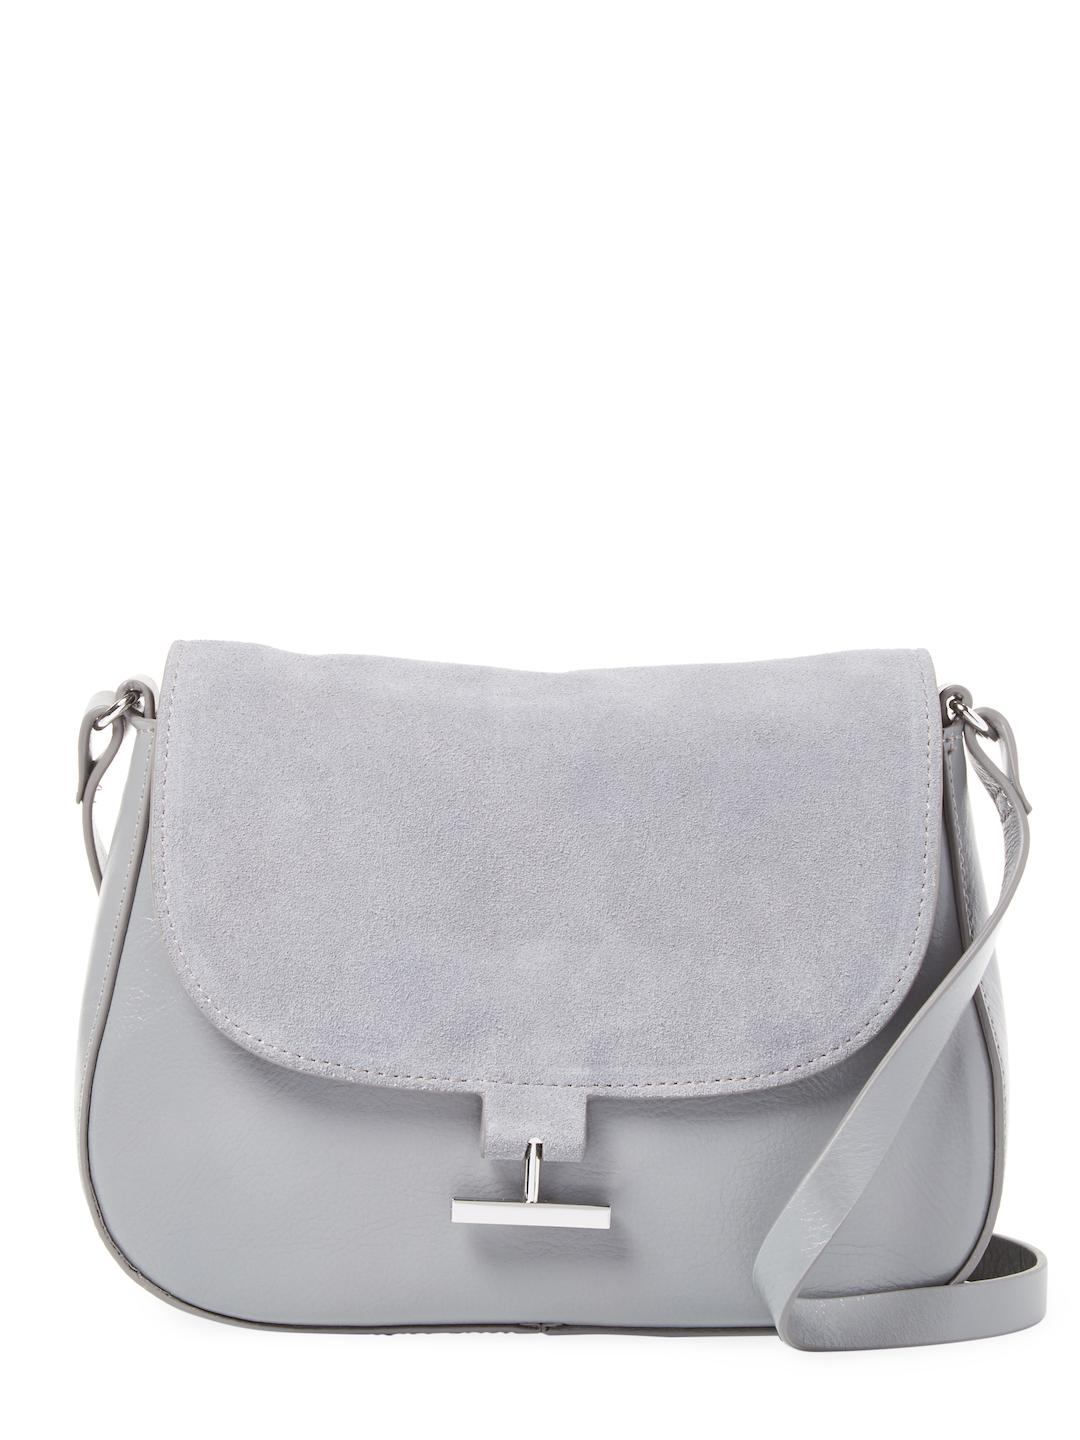 Womens Crossbody Bag Halston Heritage Quality For Sale Free Shipping SPiS6kdG